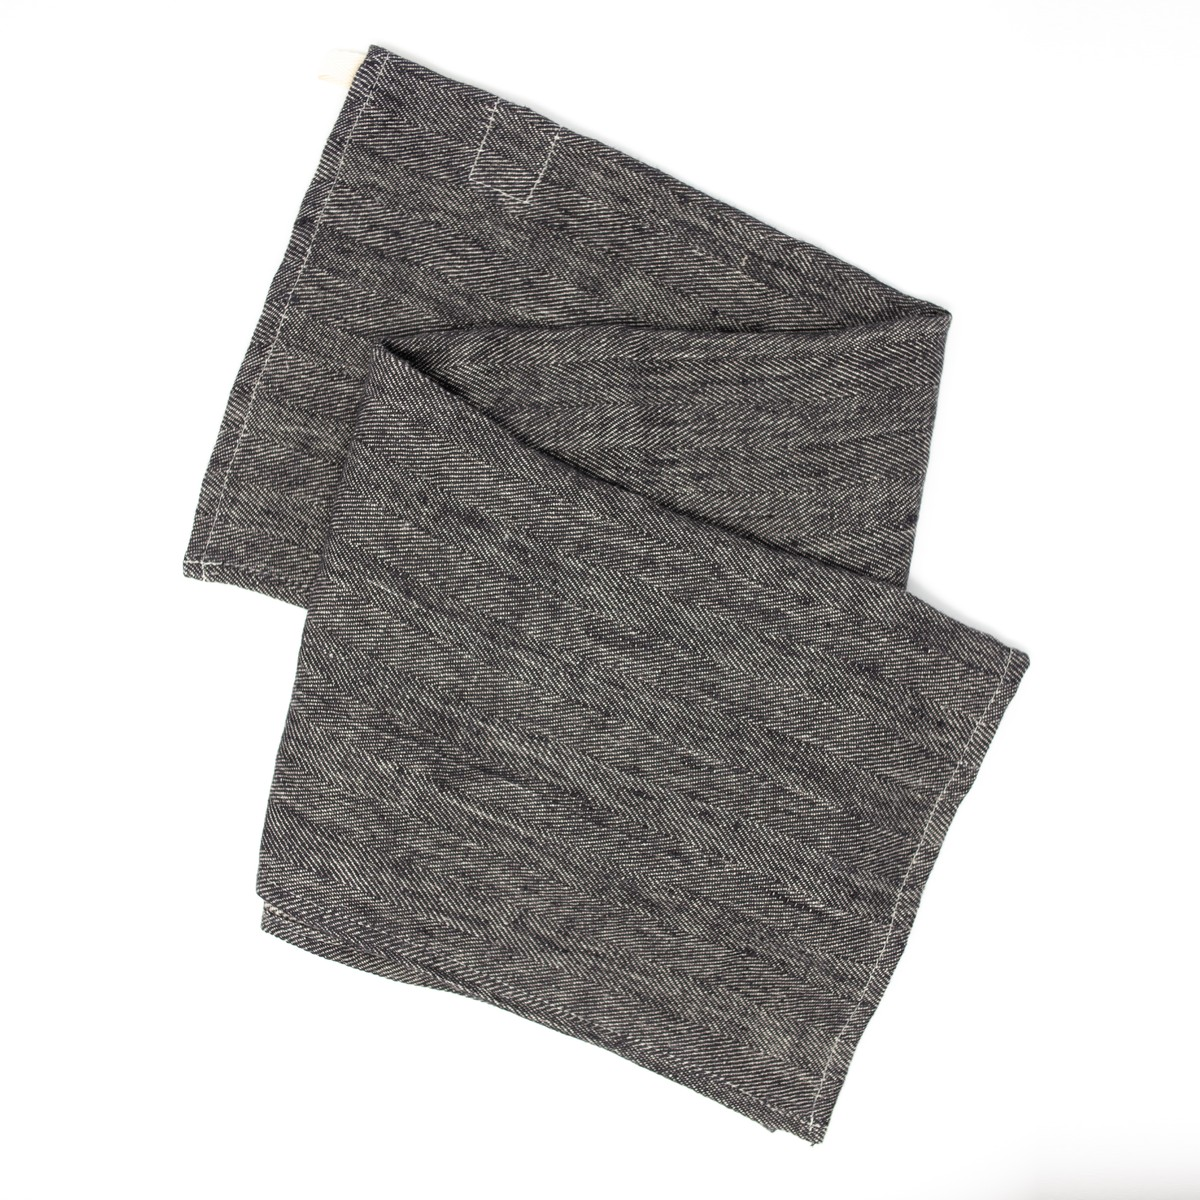 Photo of Herringbone Linen Hand Towel